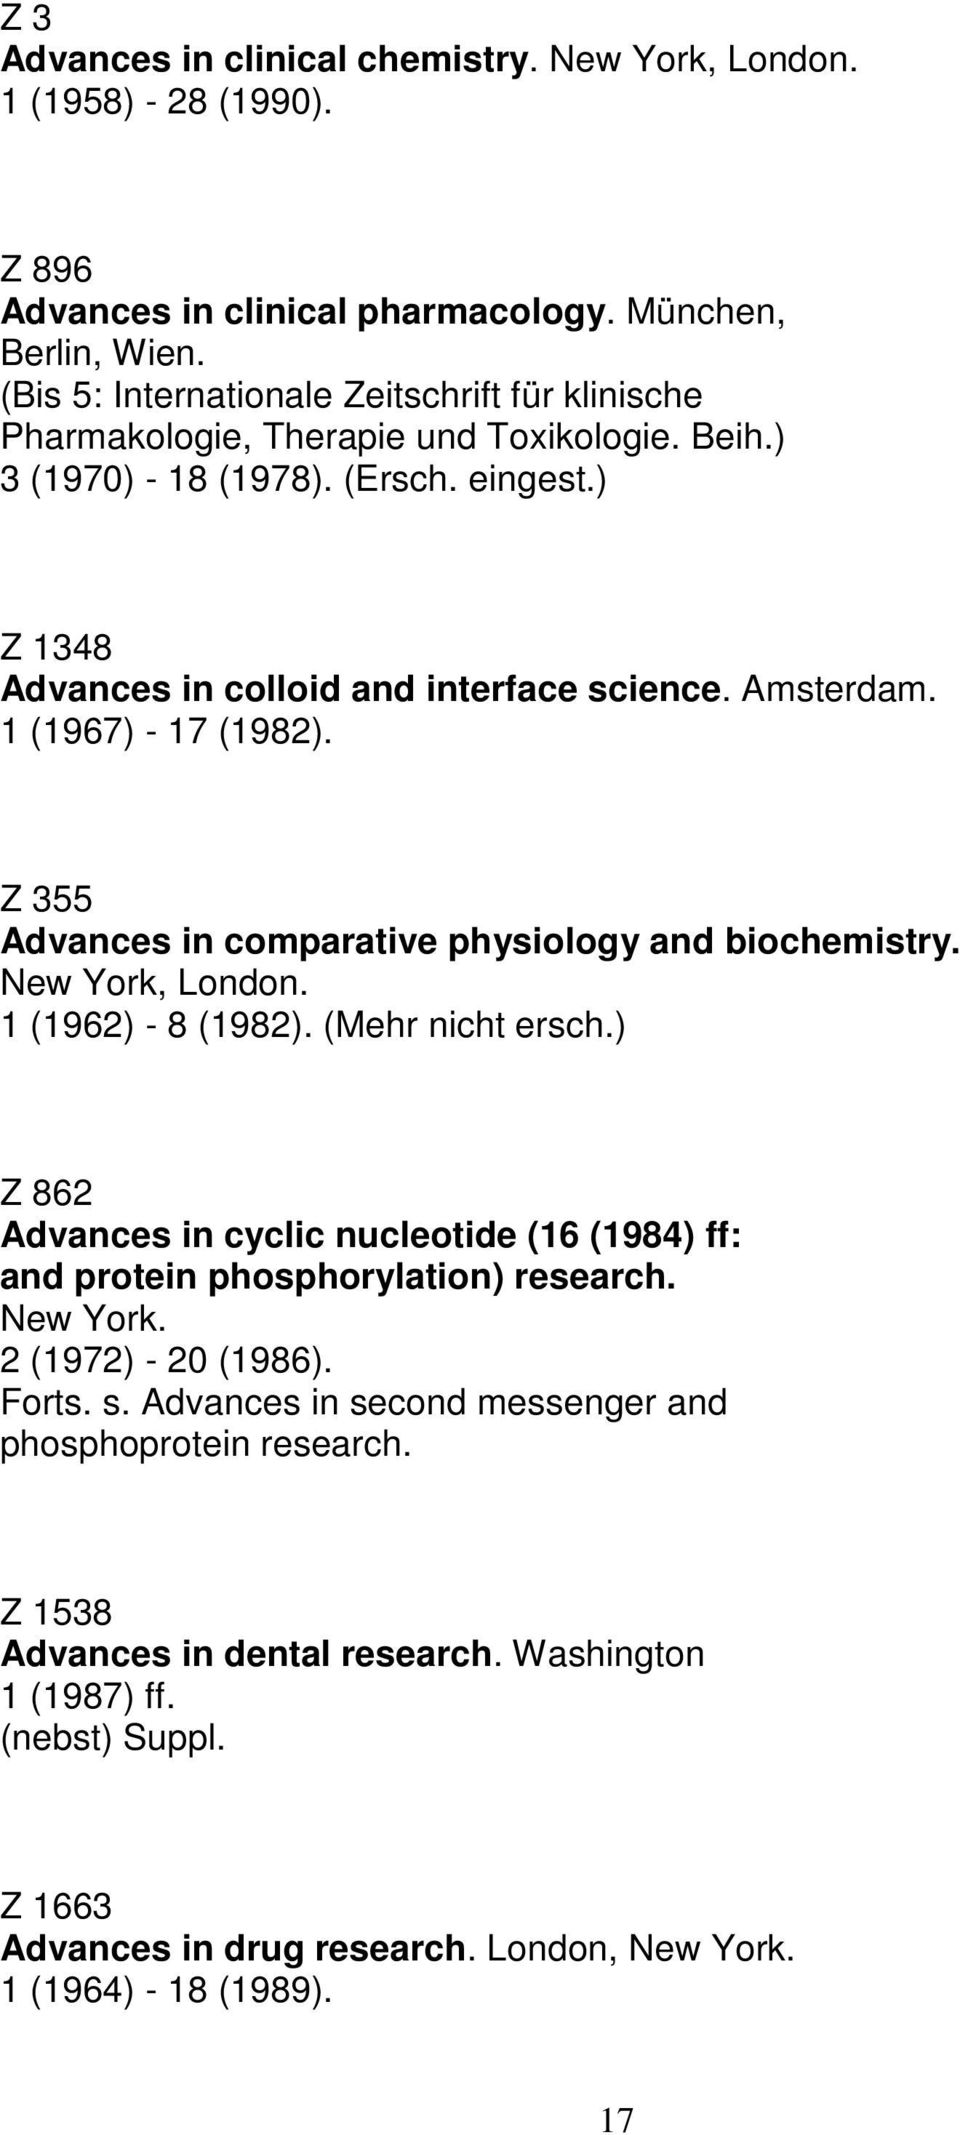 1 (1967) - 17 (1982). Z 355 Advances in comparative physiology and biochemistry. New York, London. 1 (1962) - 8 (1982). (Mehr nicht ersch.